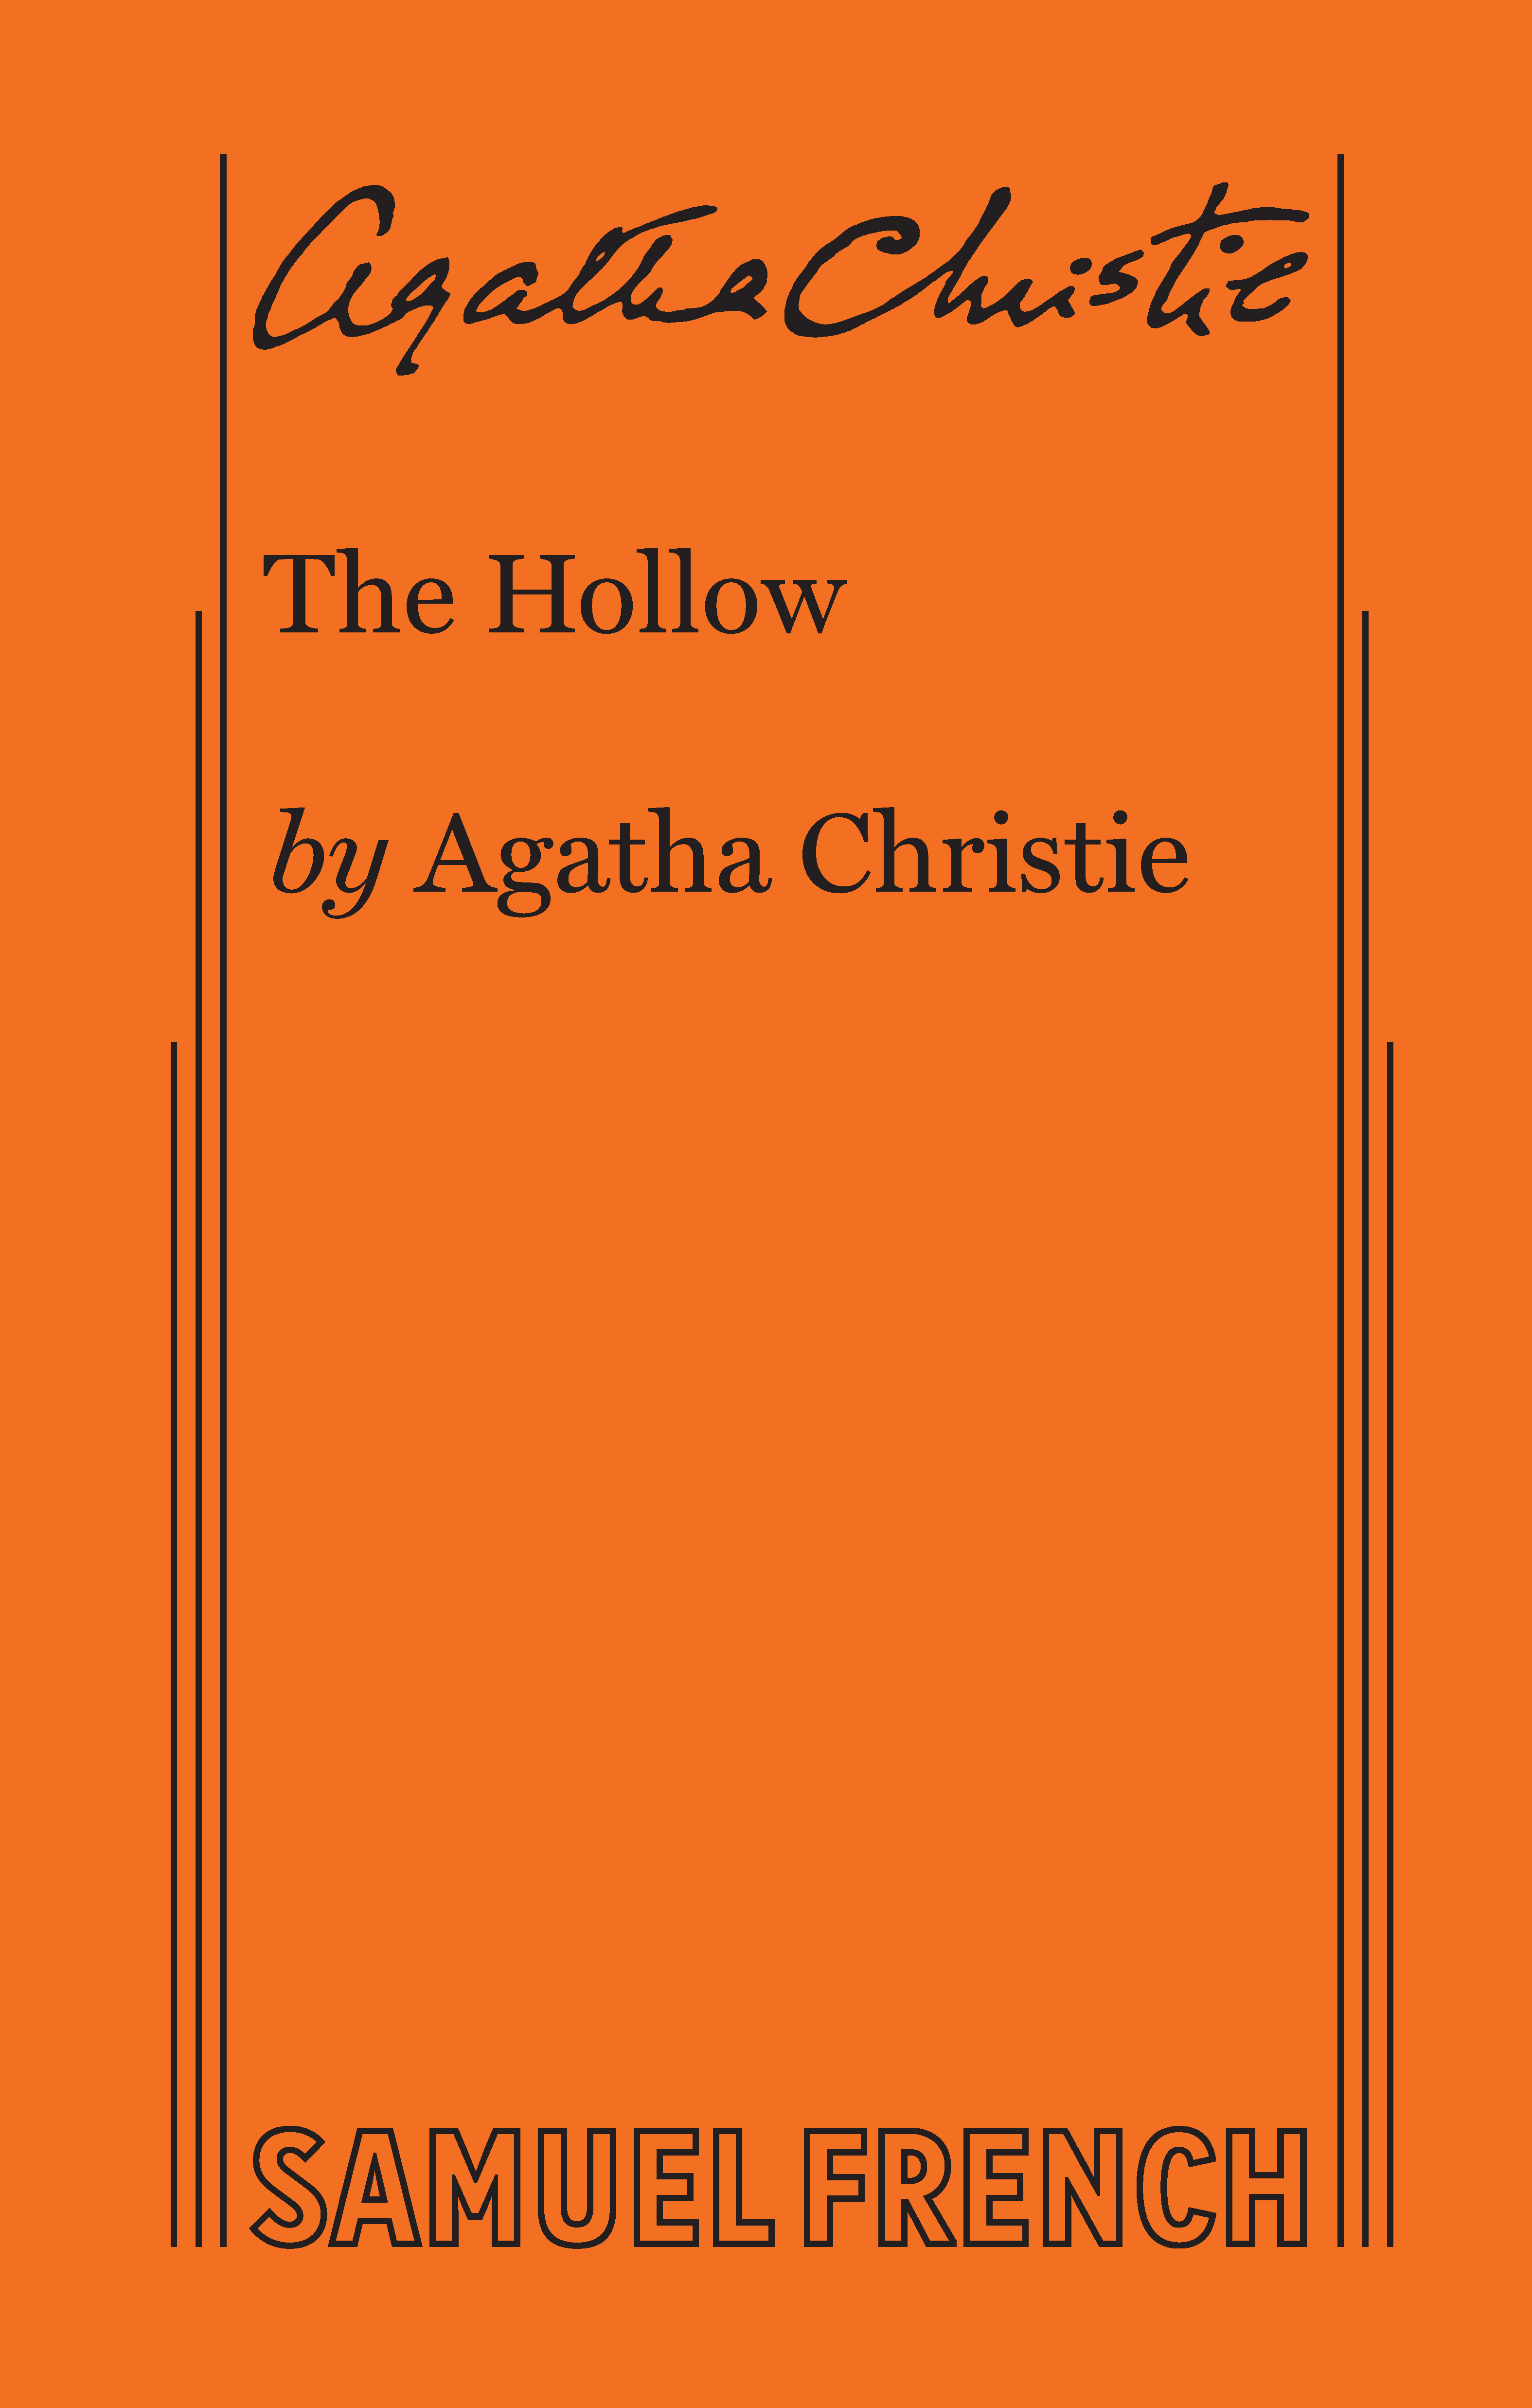 The Hollow - Play